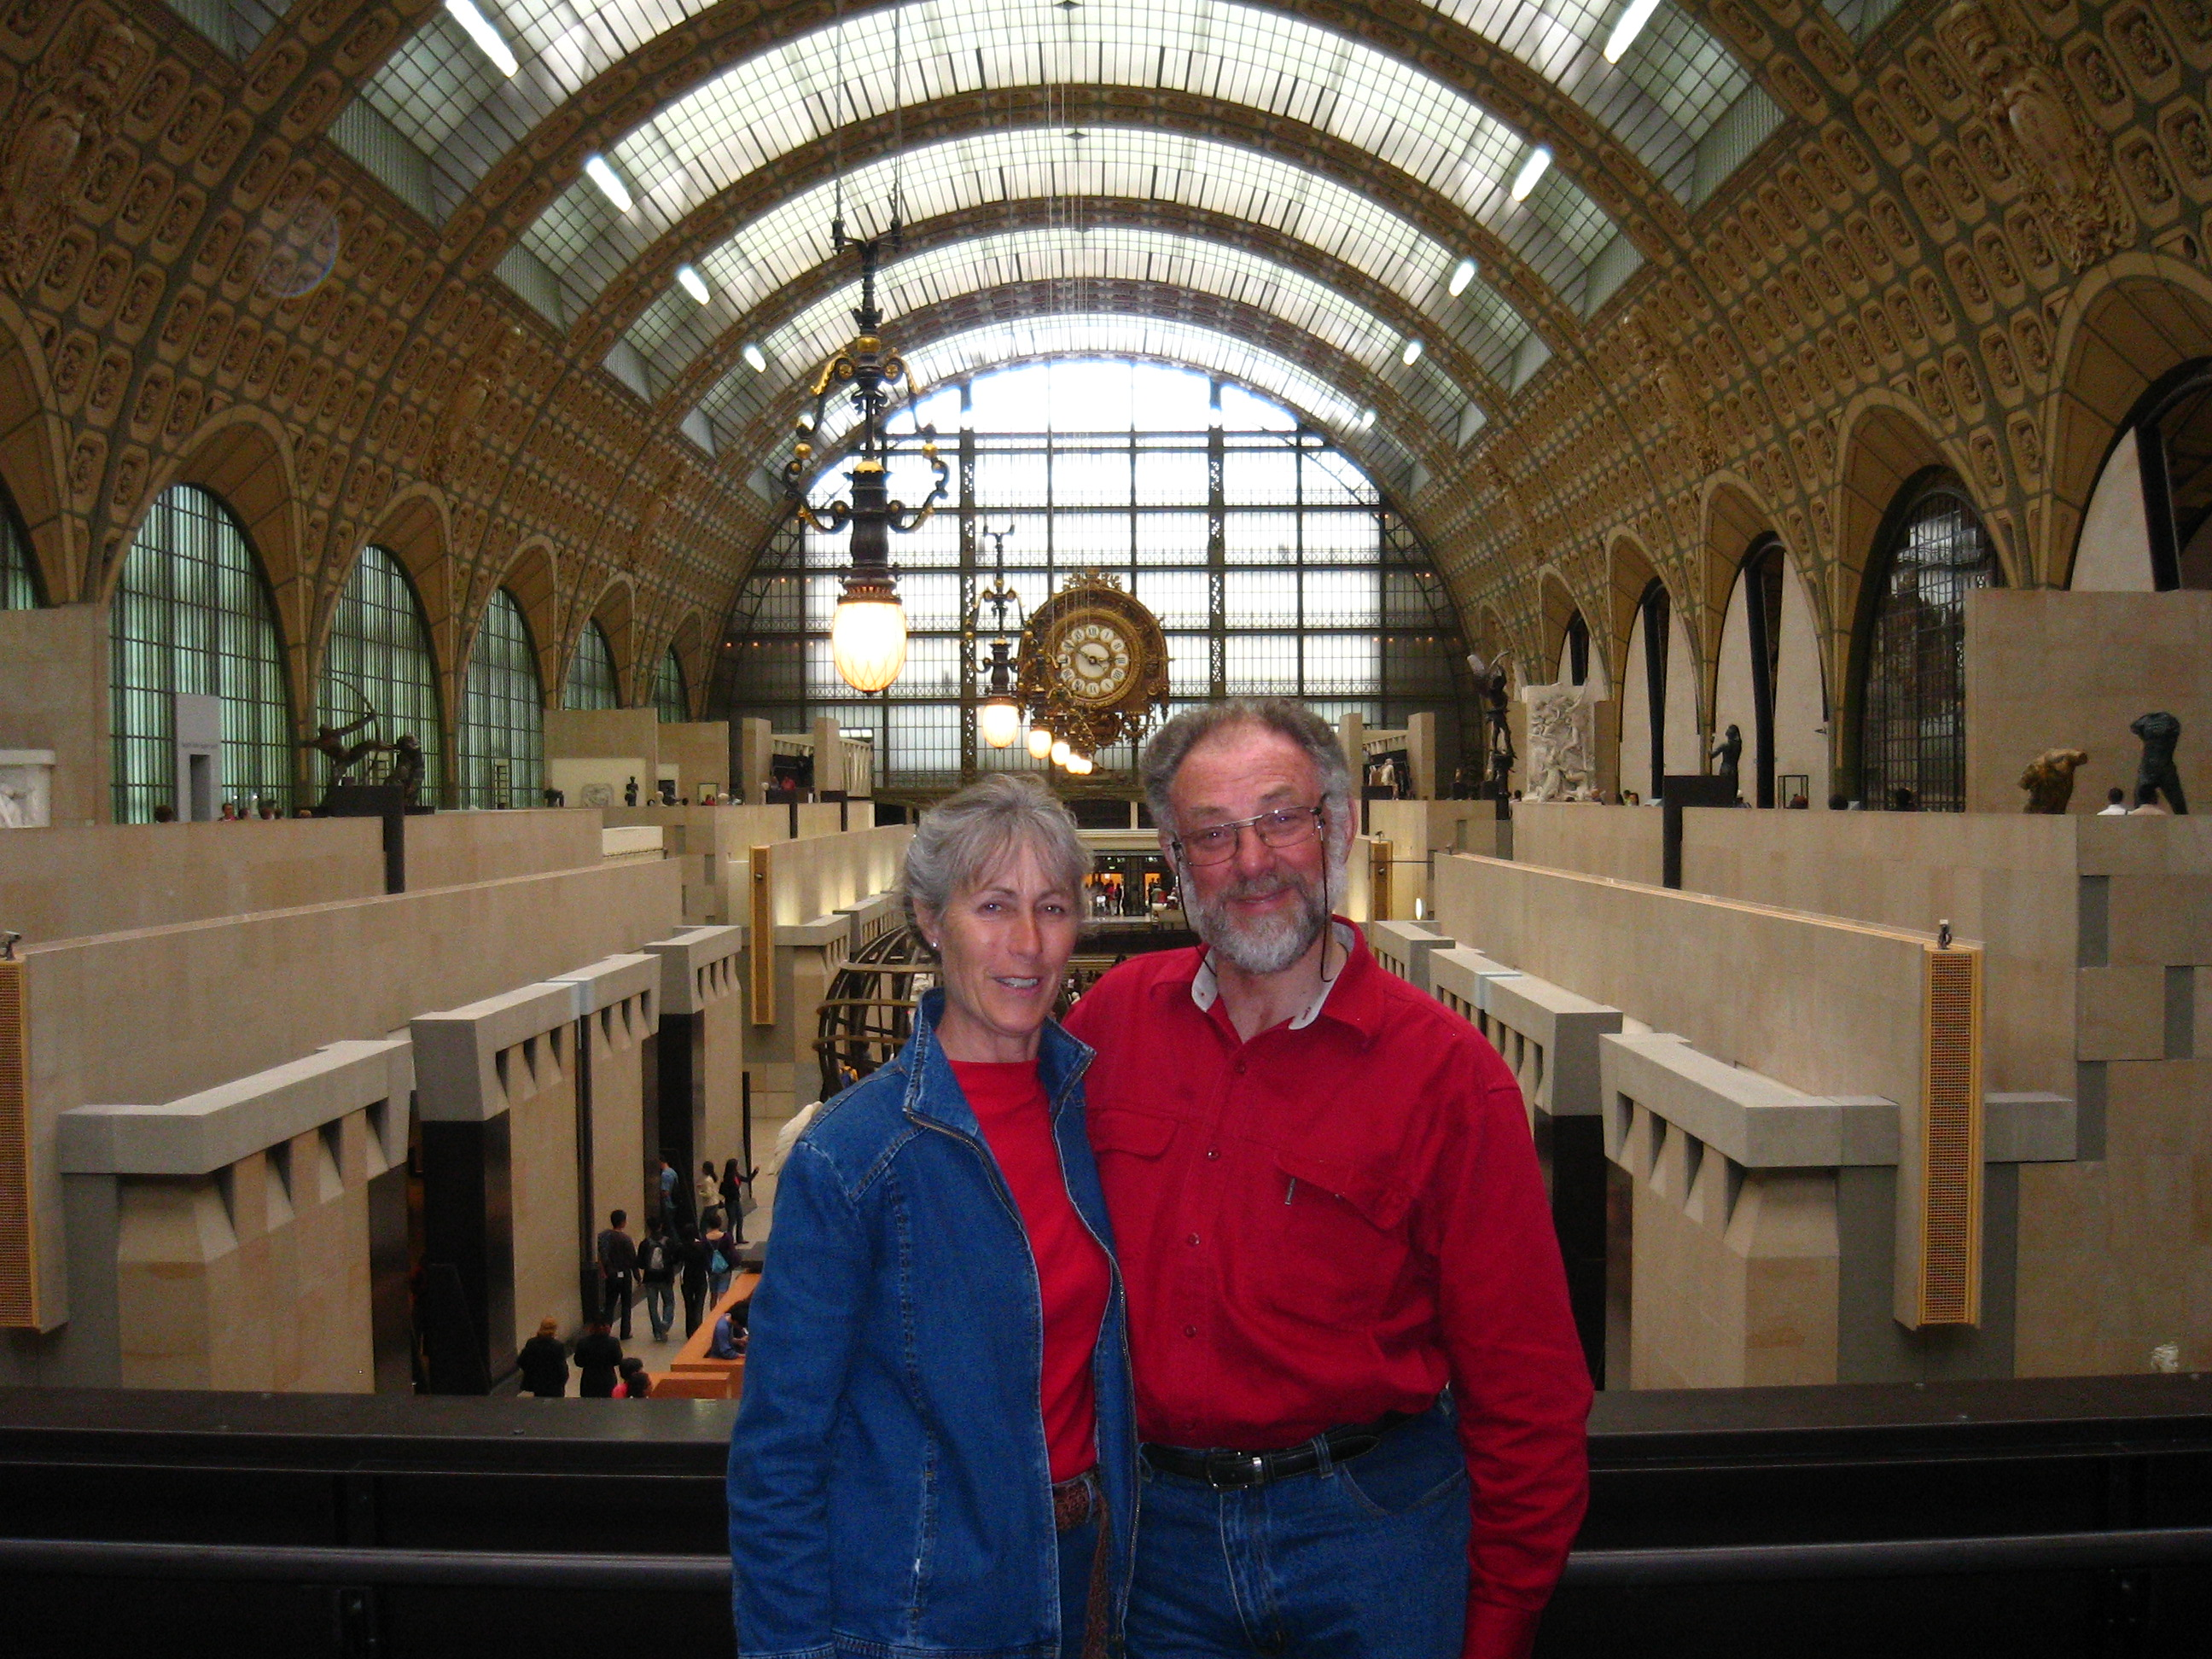 Mum and Peter at the Musee d'Orsay